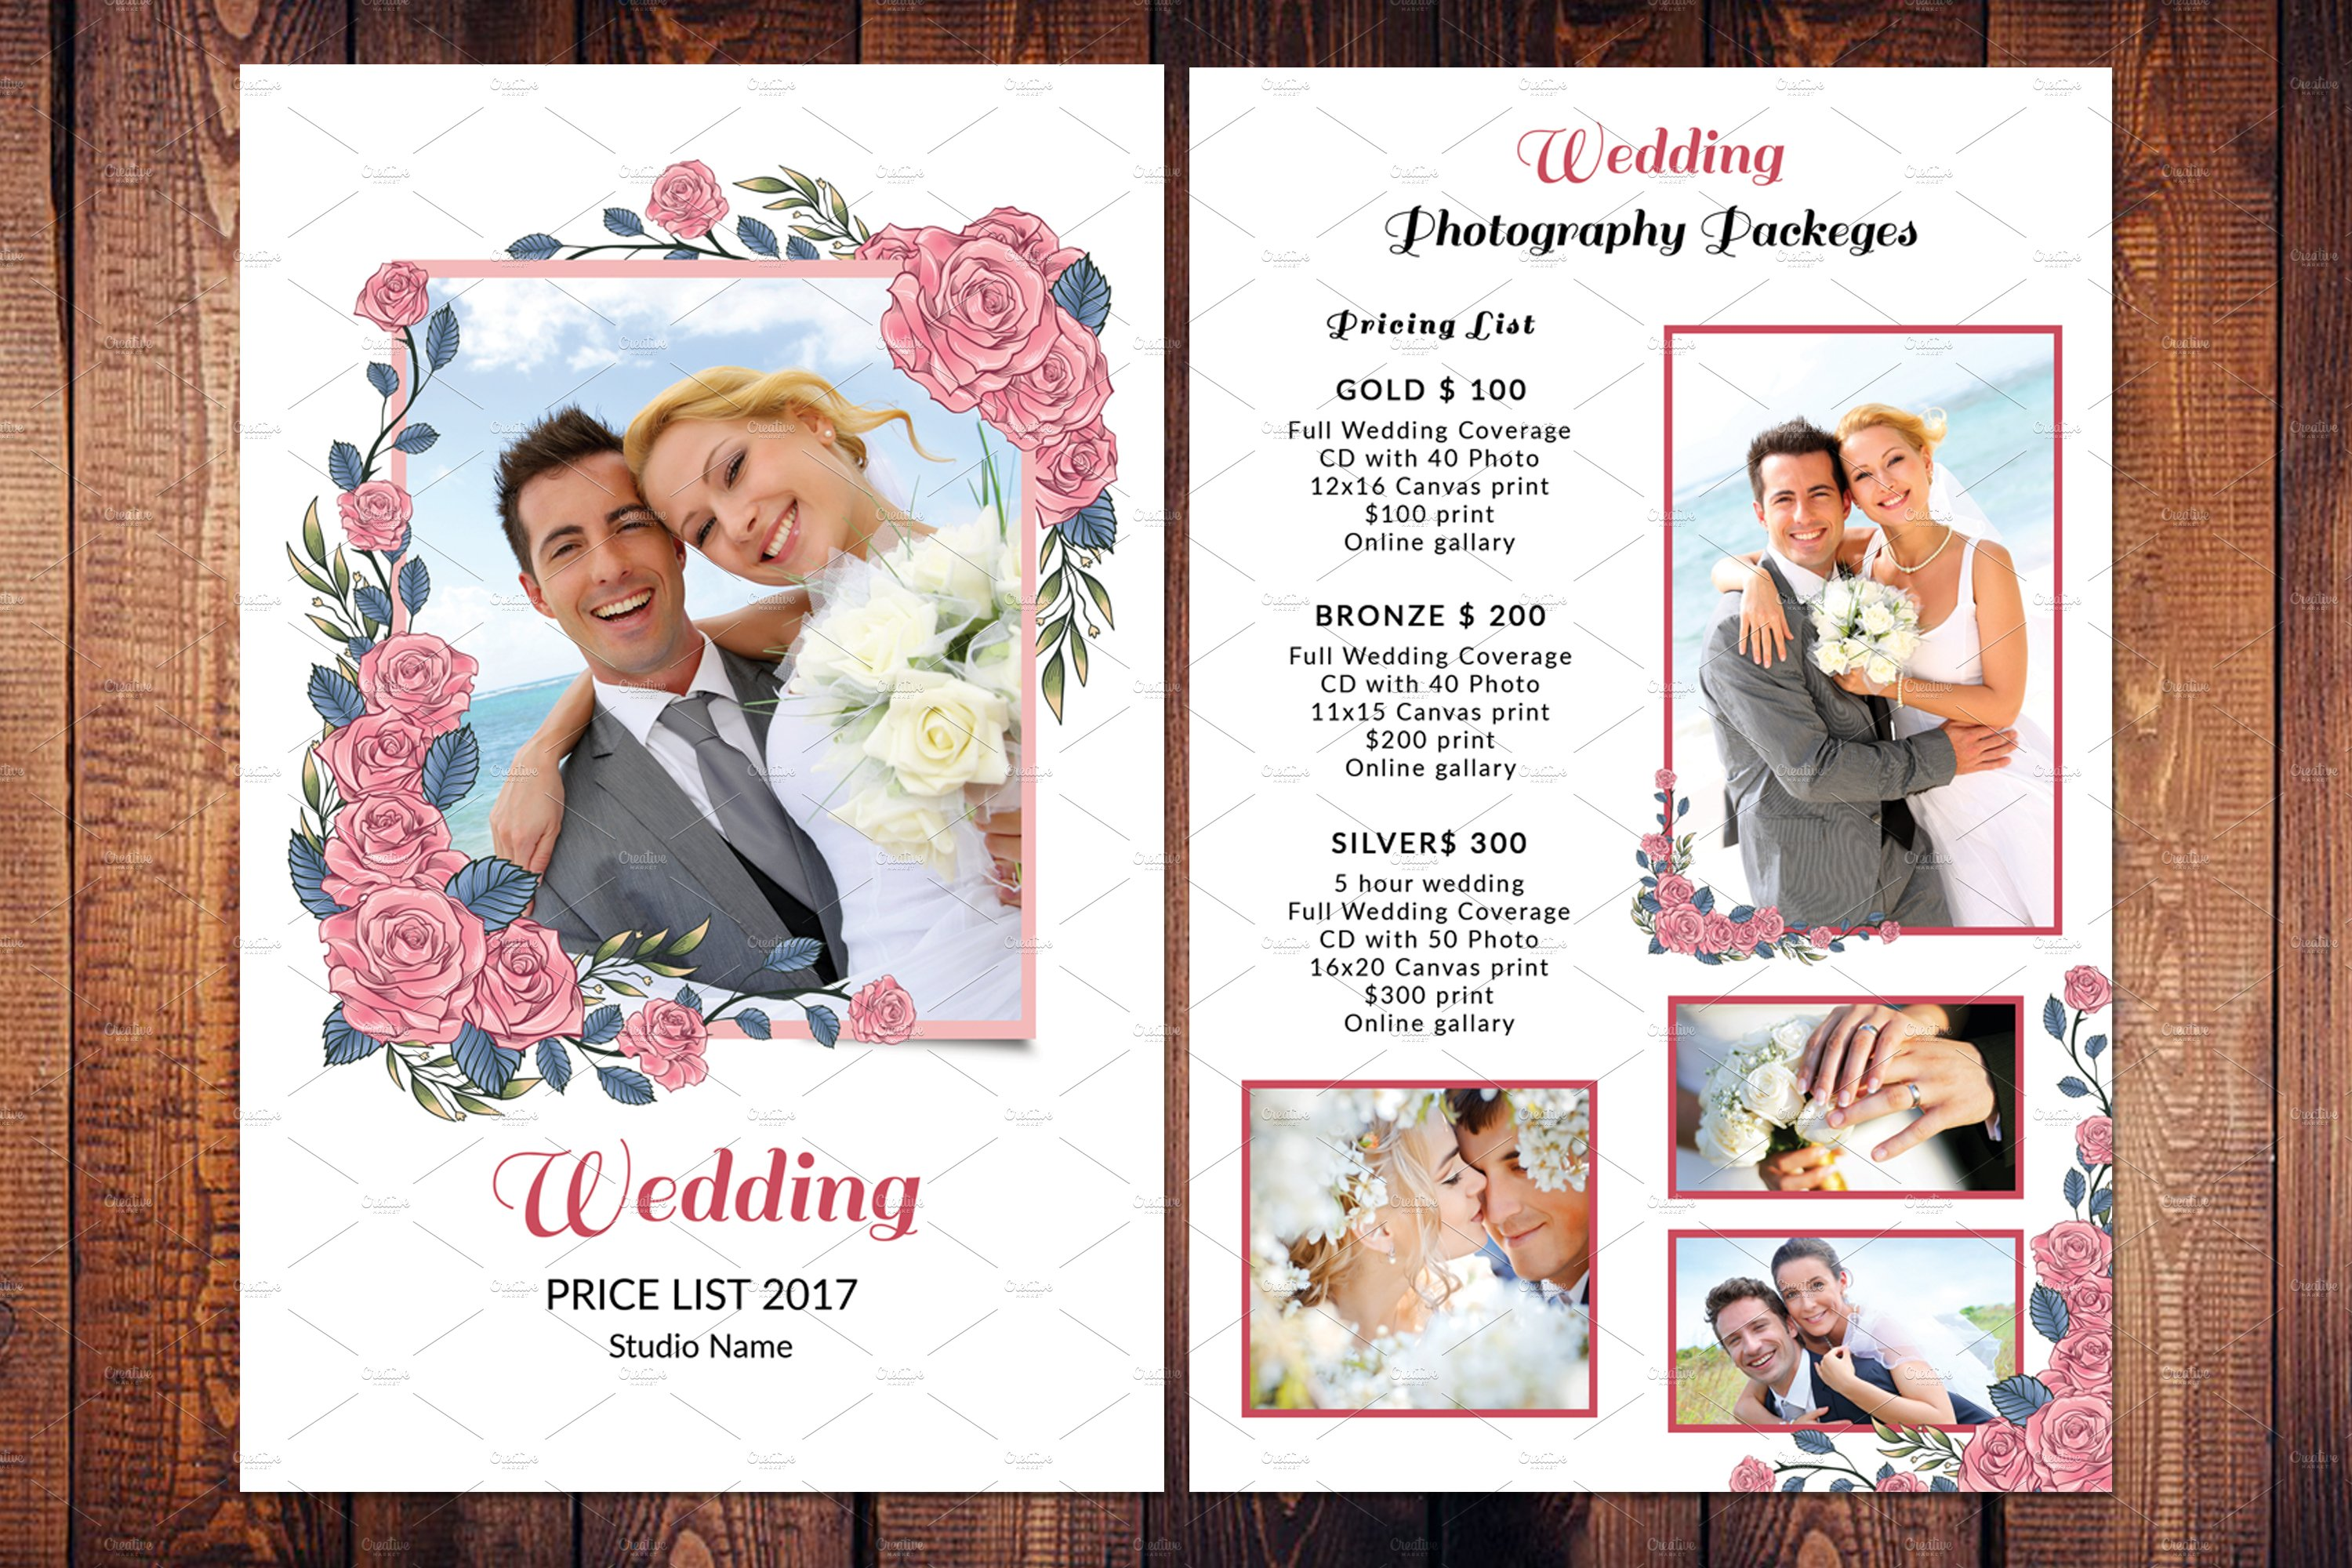 Wedding Photography Price List V587 Flyer Templates Creative Market